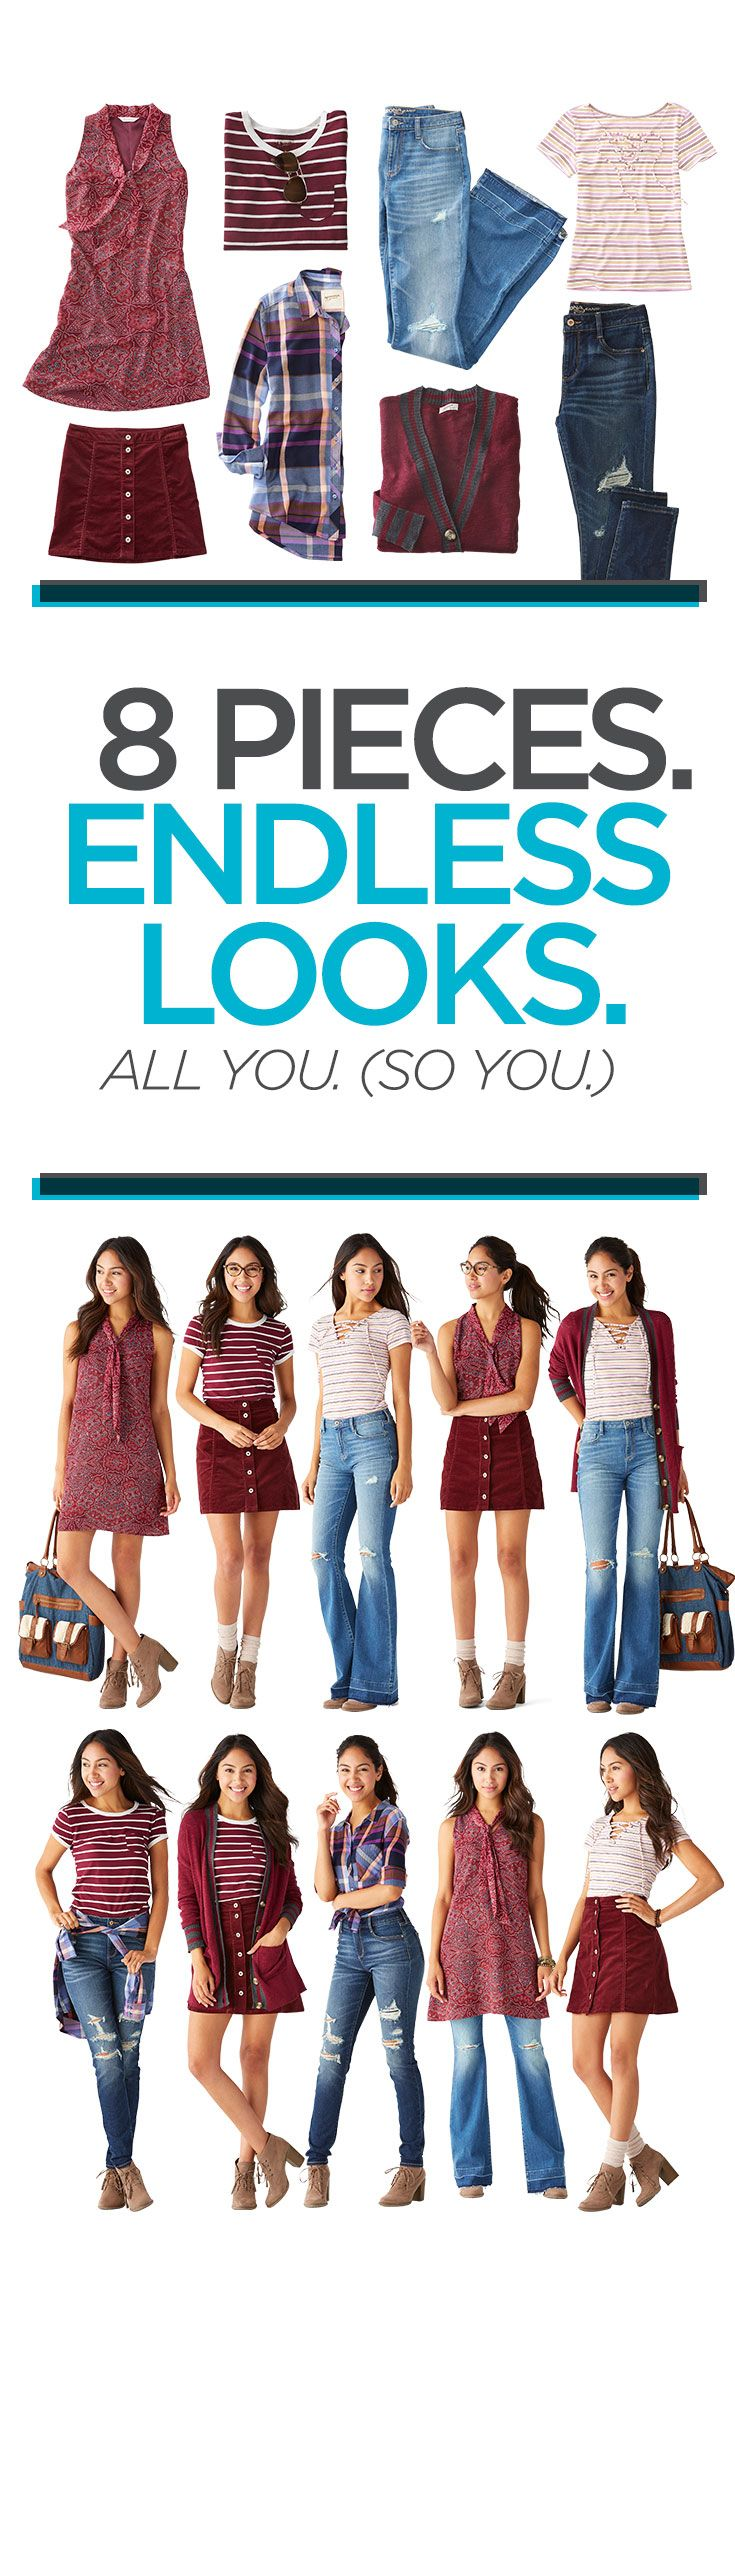 Show up to class on time and on trend with the hottest pieces for back to school style. Dresses that can be worn multiple ways, a skirt that is so easy to throw on with a boho tee and varsity cardigan make getting ready for class so easy. Boho details like lace and crochet and retro patterns are a must. Add in a bold color like burgundy to tie it all together. Create more than one first day look. You'll have endless outfits for back to school. Click to shop more back to school looks!